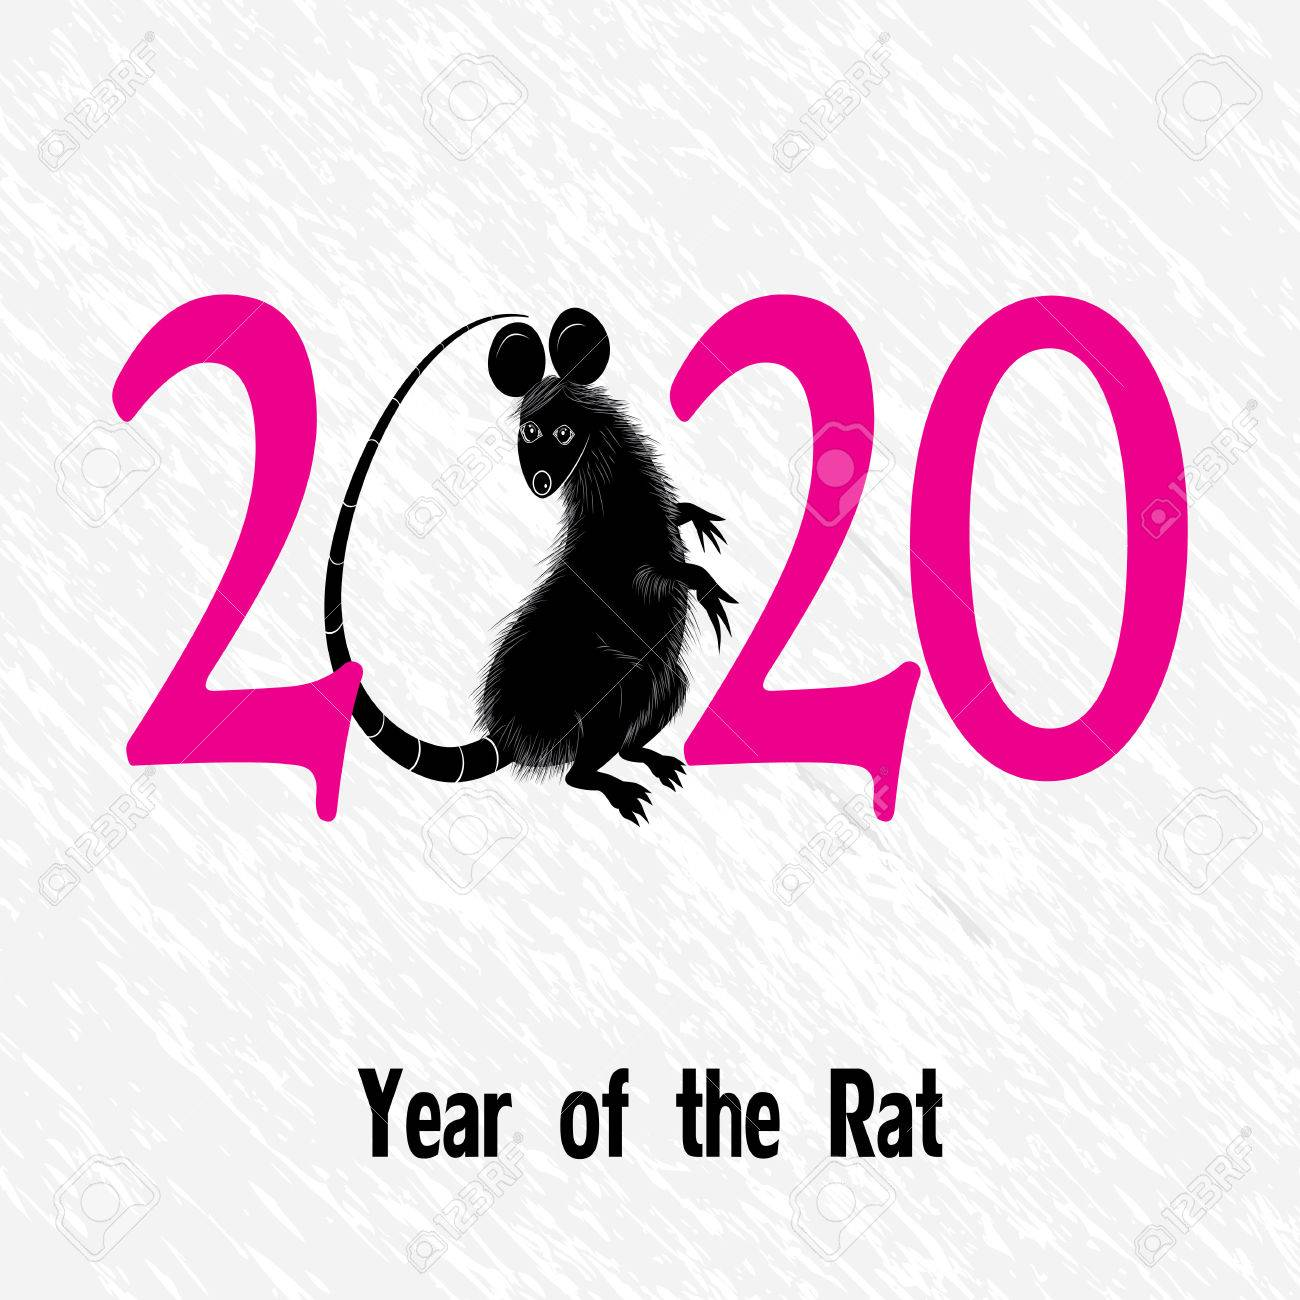 Rat mouse as symbol for year 2020 by chinese traditional rat mouse as symbol for year 2020 by chinese traditional horoscope with grass stock vector biocorpaavc Images